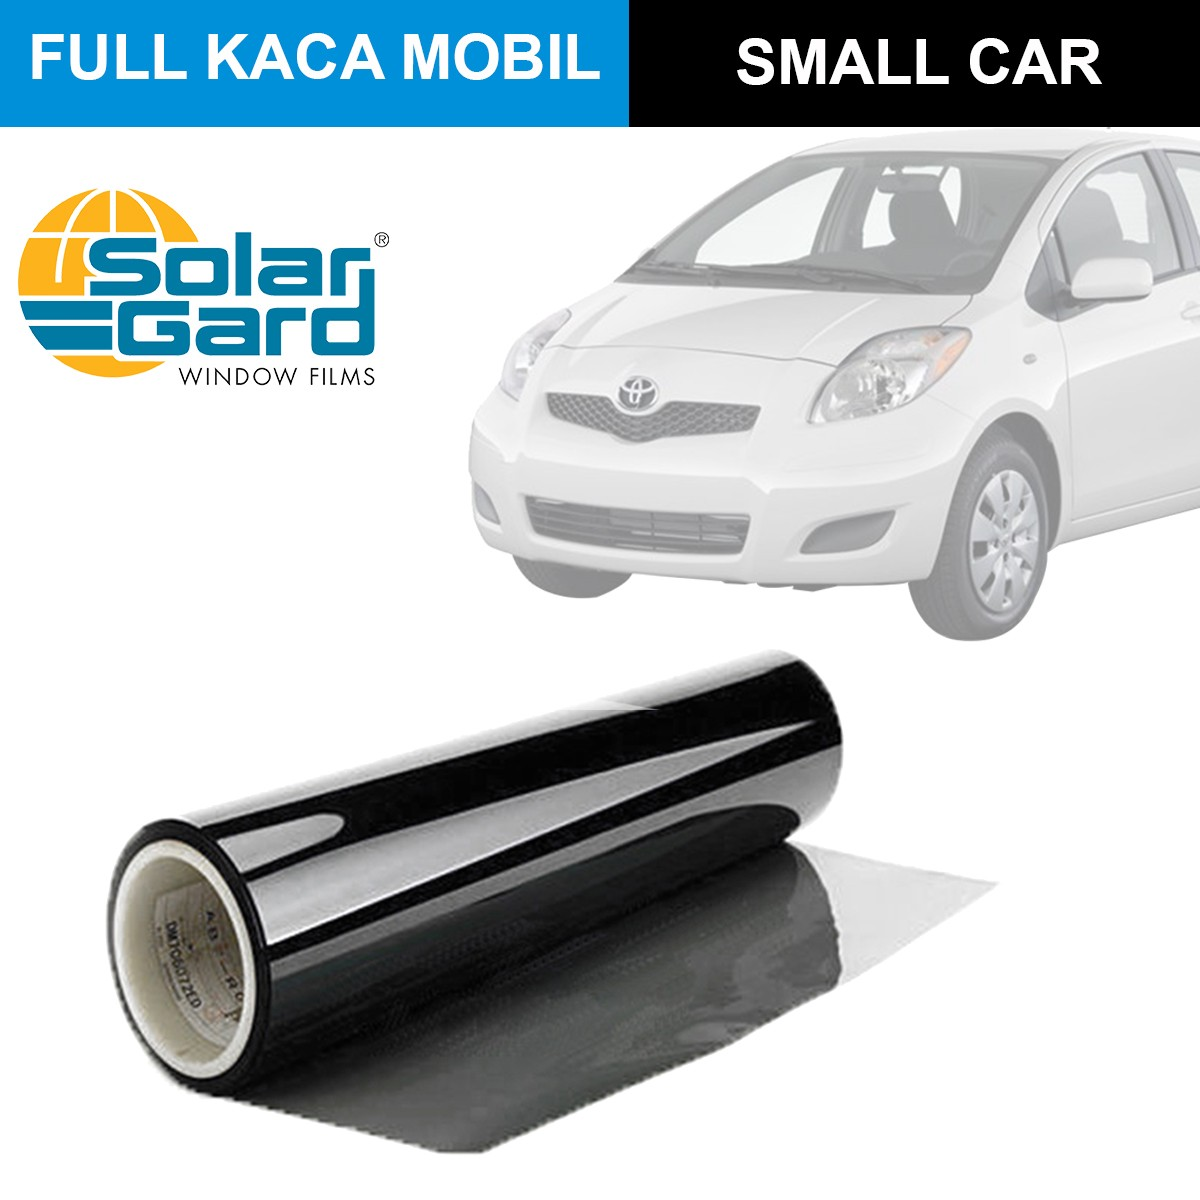 KACA FILM SOLAR GARD MOST FAMOUS - (SMALL CAR) FULL KACA